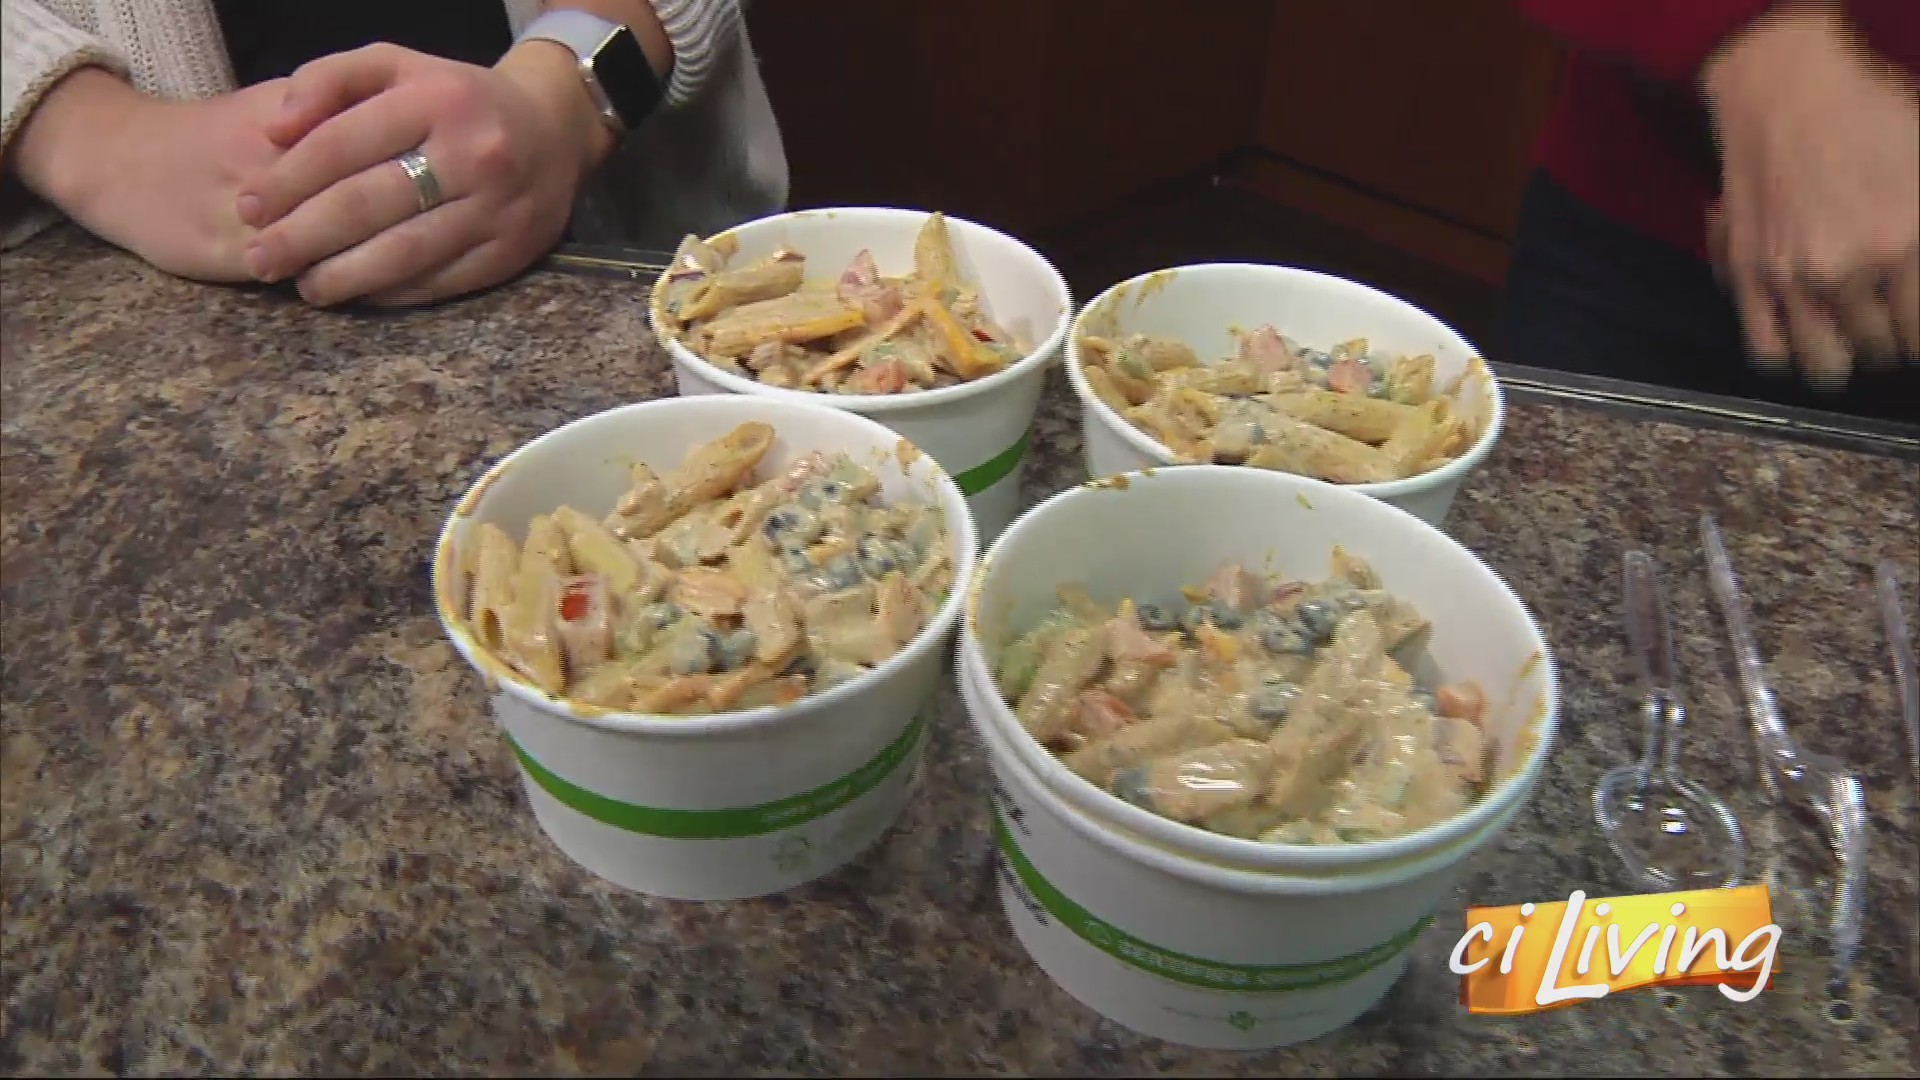 Southwester Pasta Salad from the Bevier Cafe